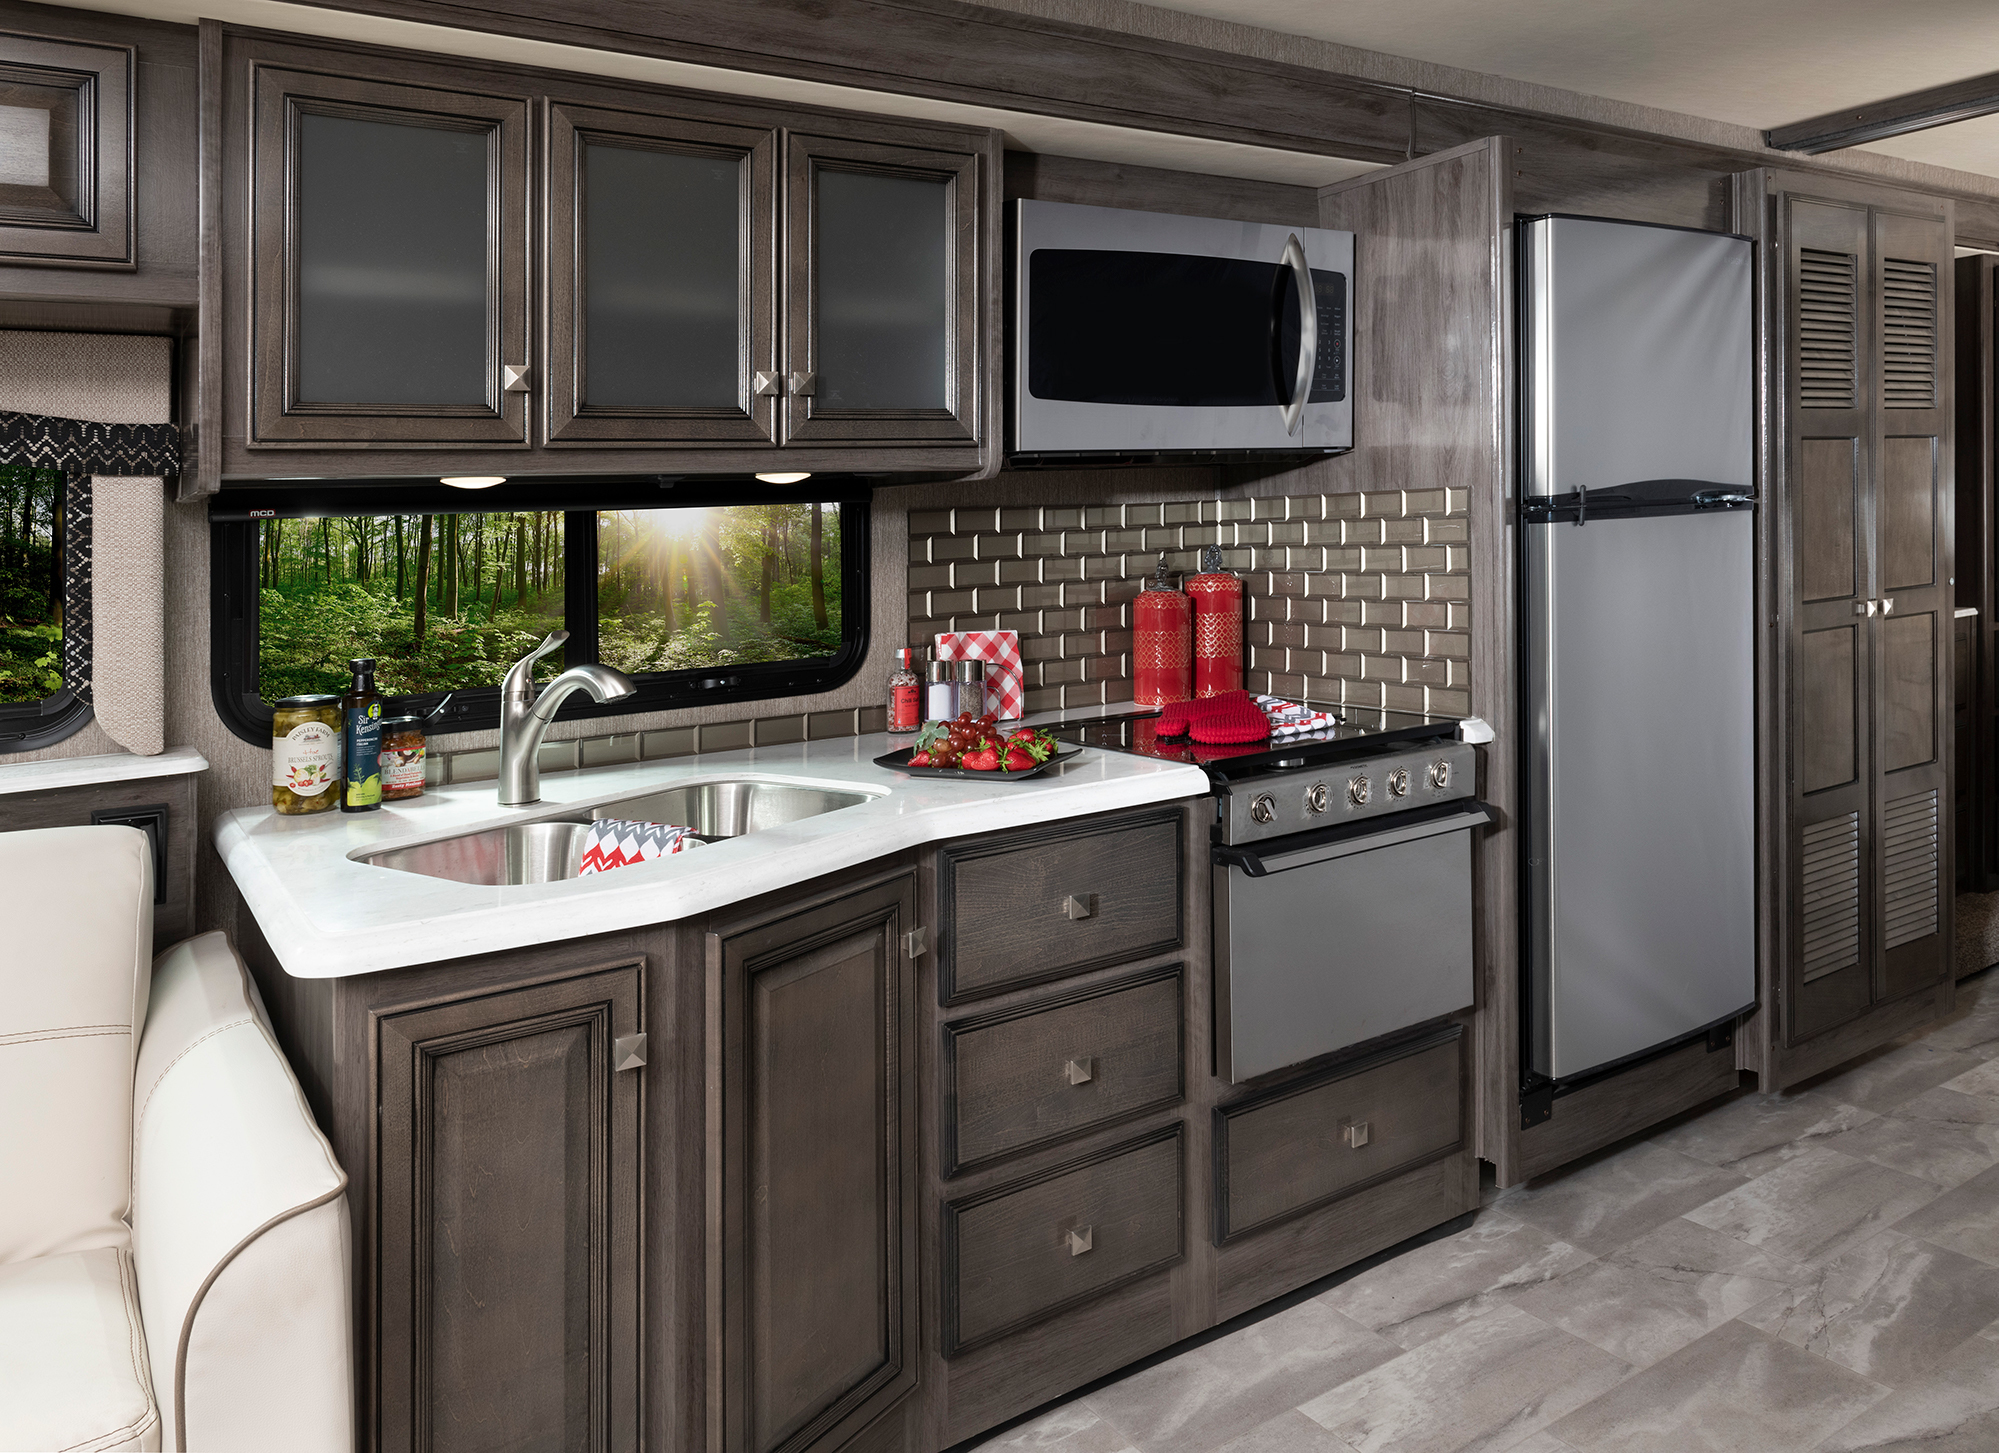 Flair 35R Driftwood décor with Greystone cabinetry